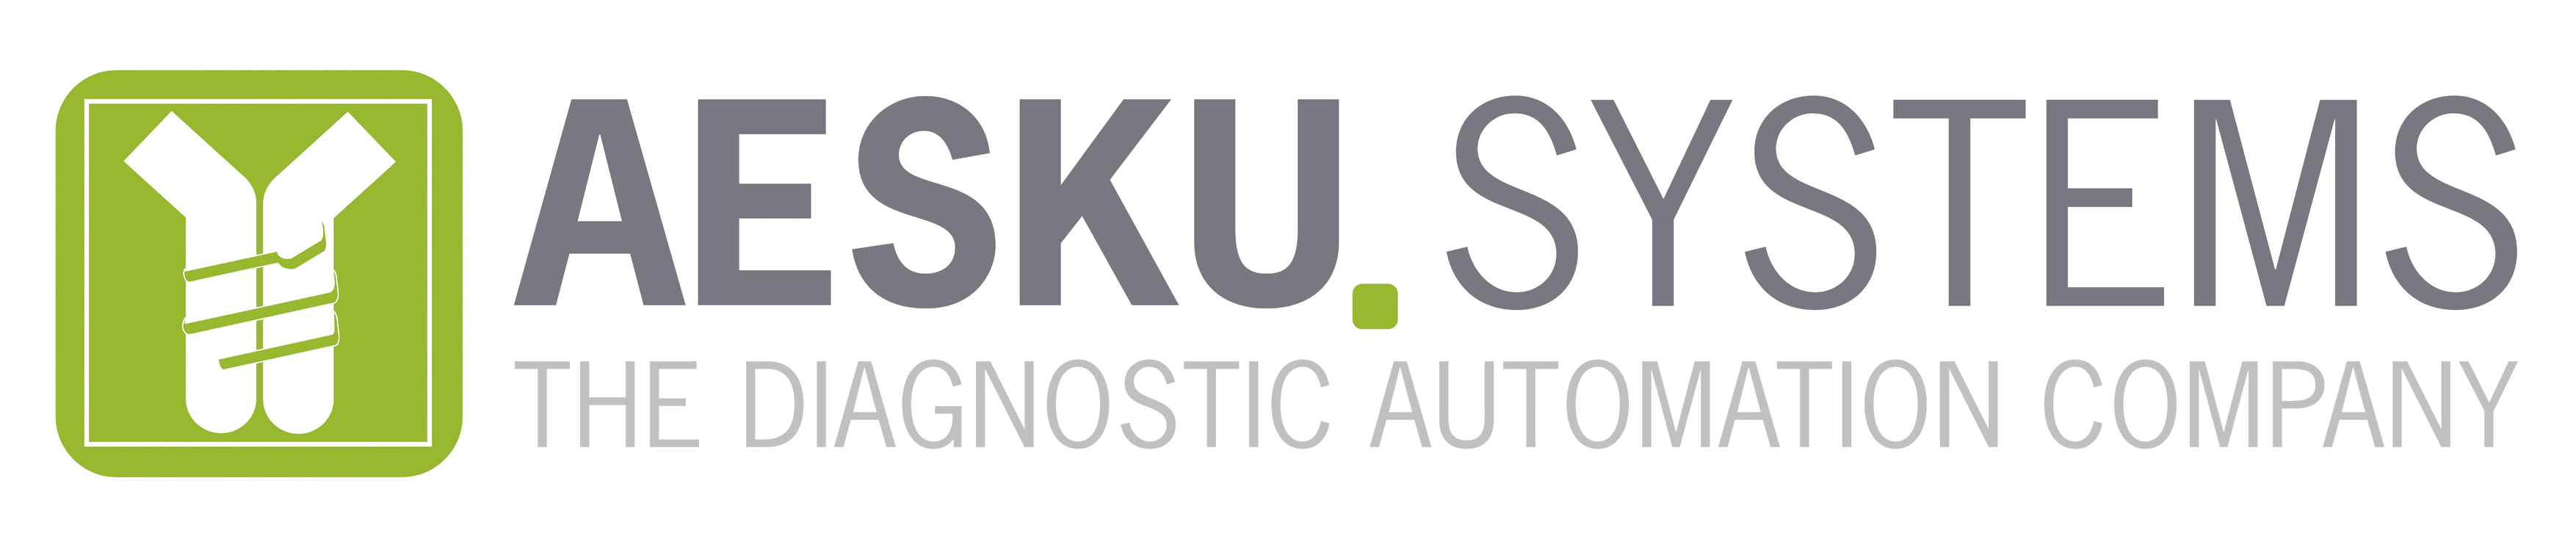 AESKU.Systems